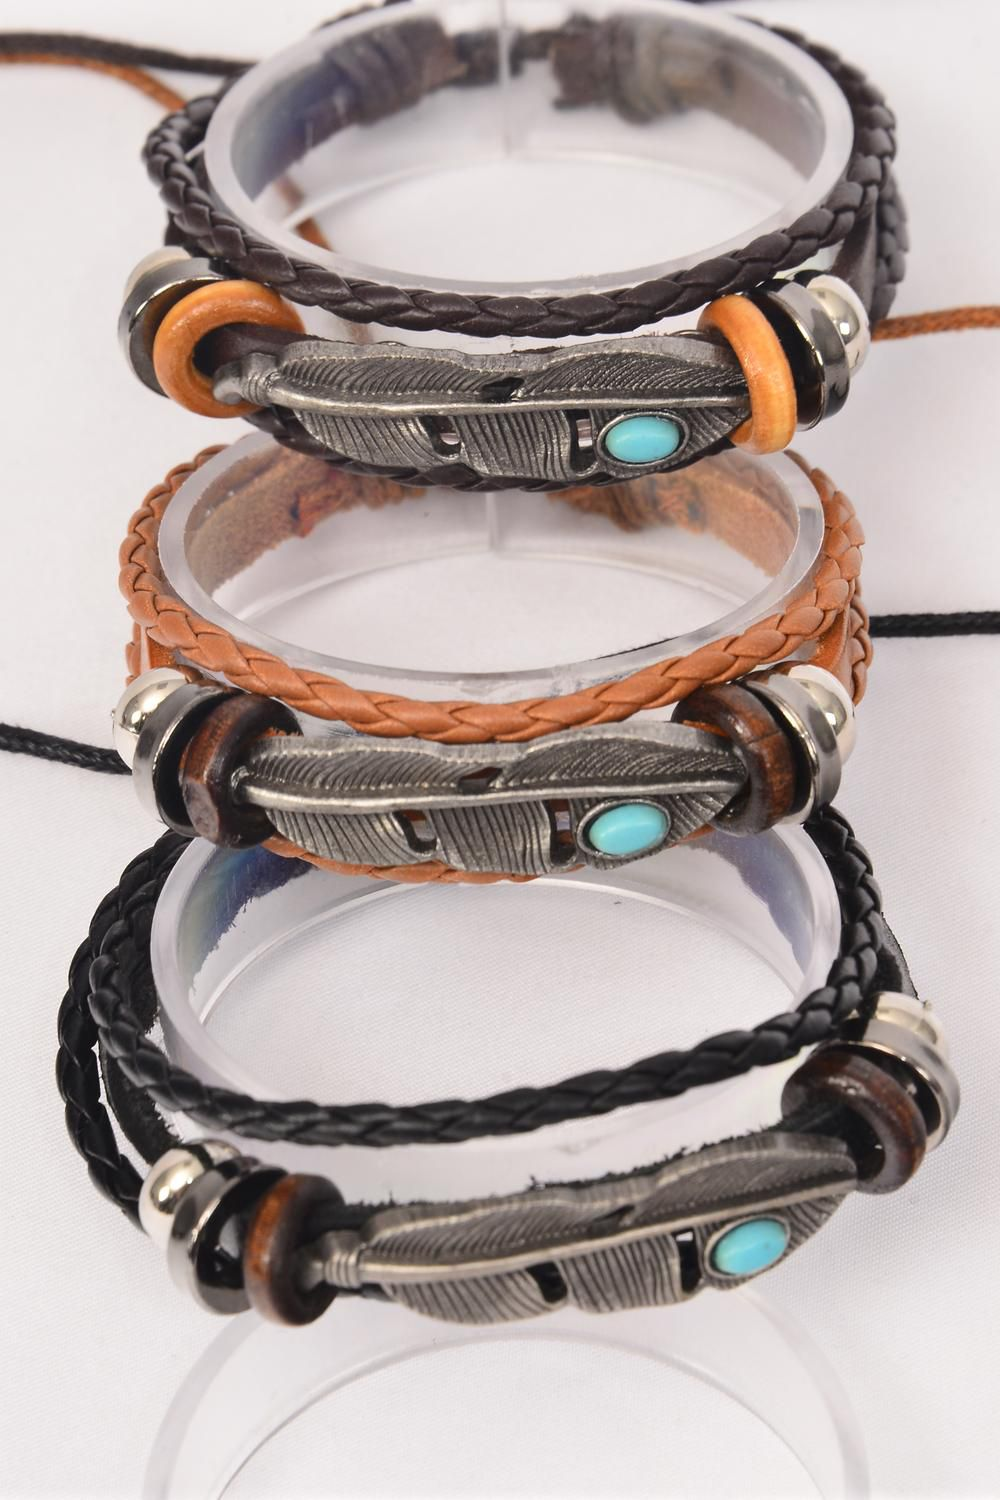 Bracelet Real Leather Band & Feather Triple Strand/DZ **Unisex** Adjustable,4 of each Color Mix,Individual Hang tag & OPP Bag & UPC Code